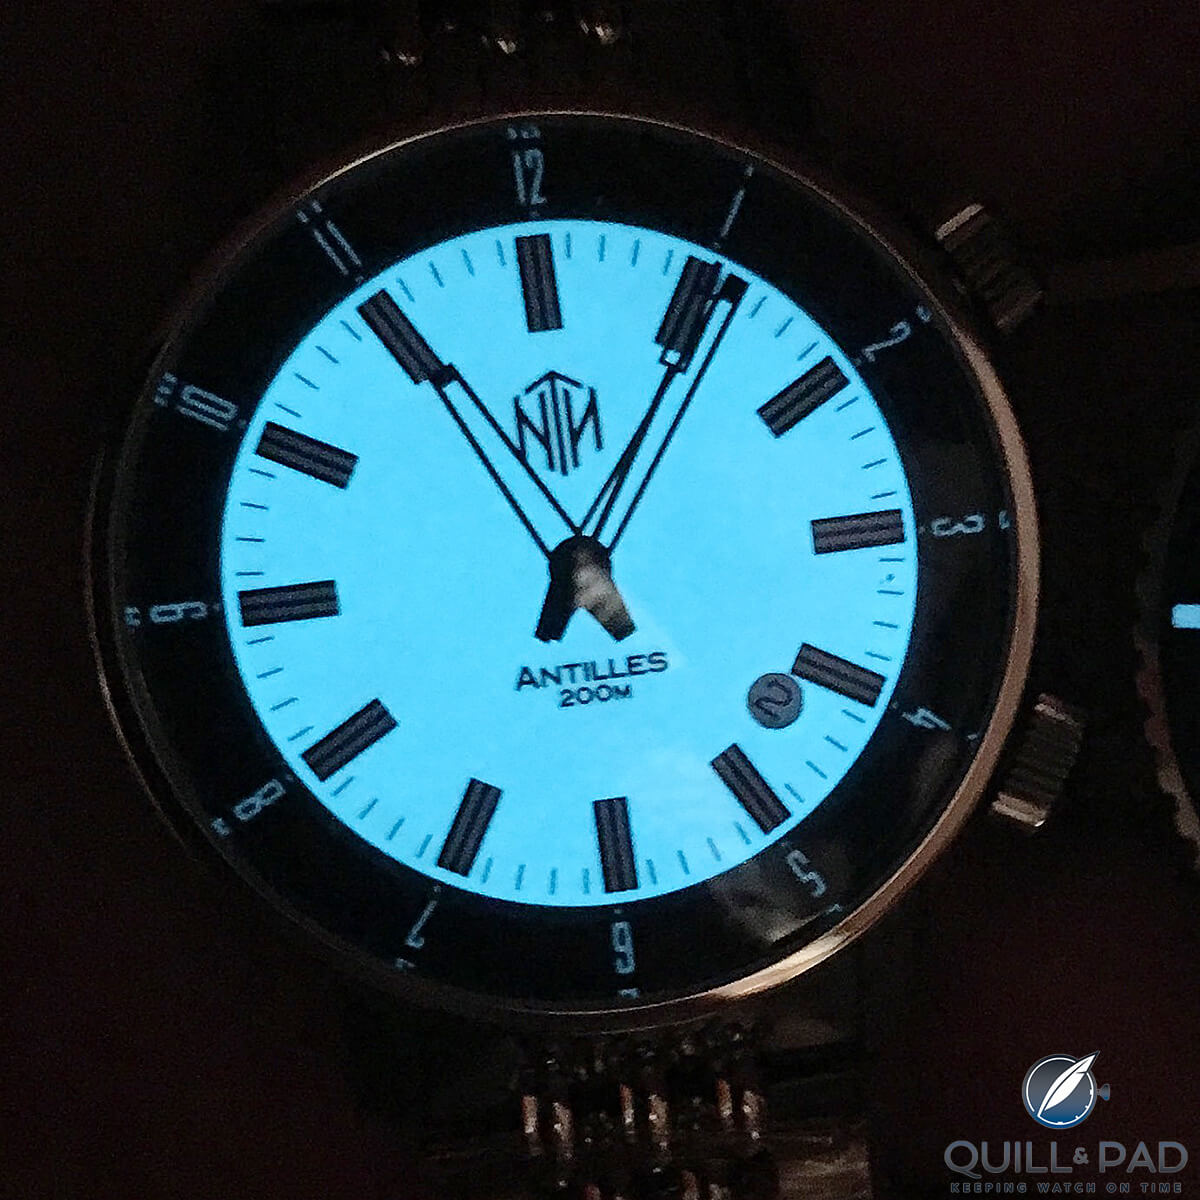 NTH Antilles lume (photo courtesy John Keil)